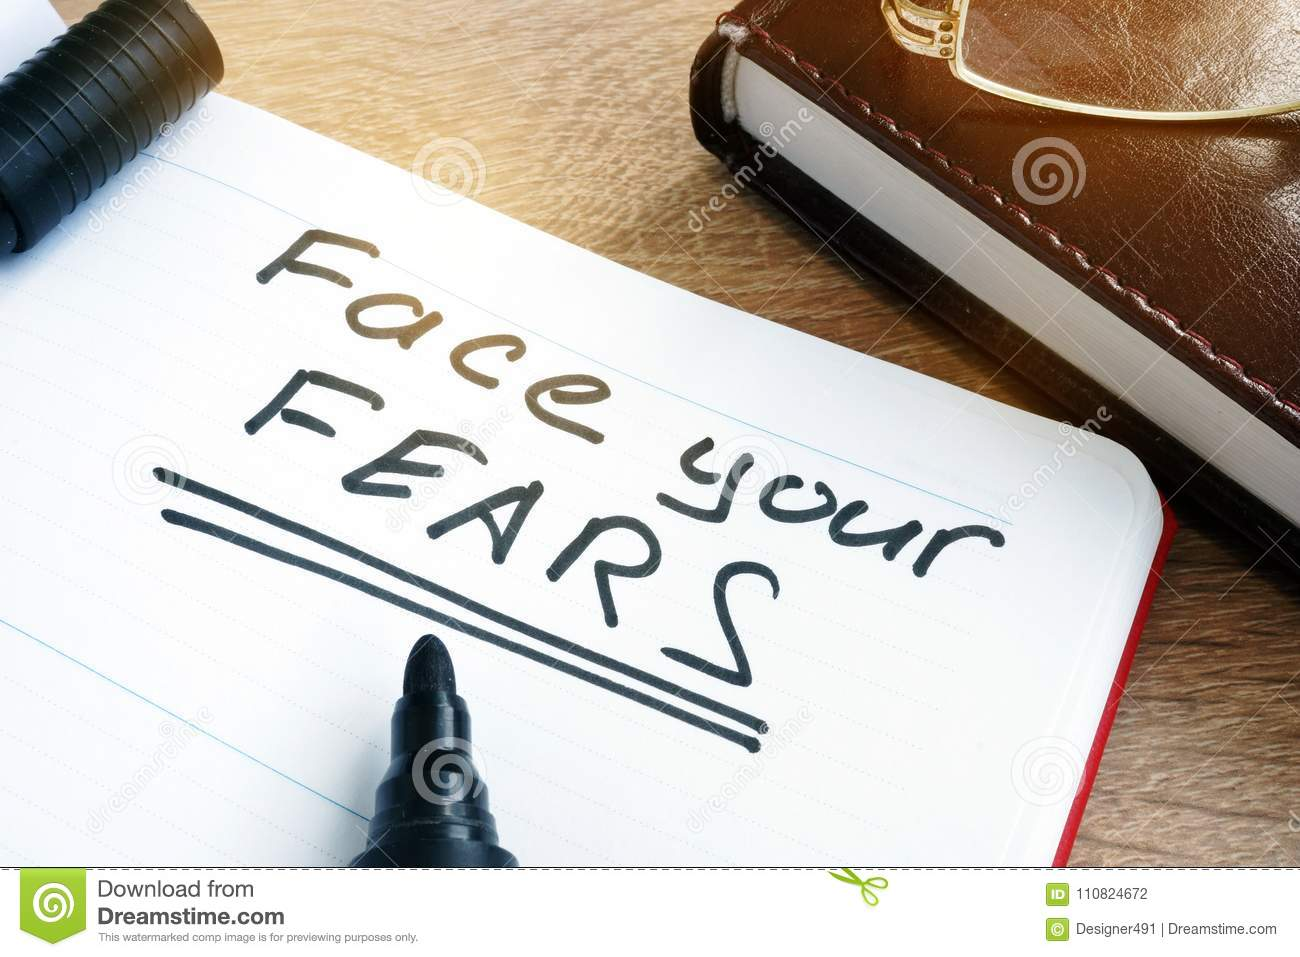 Face your fears written in a note.